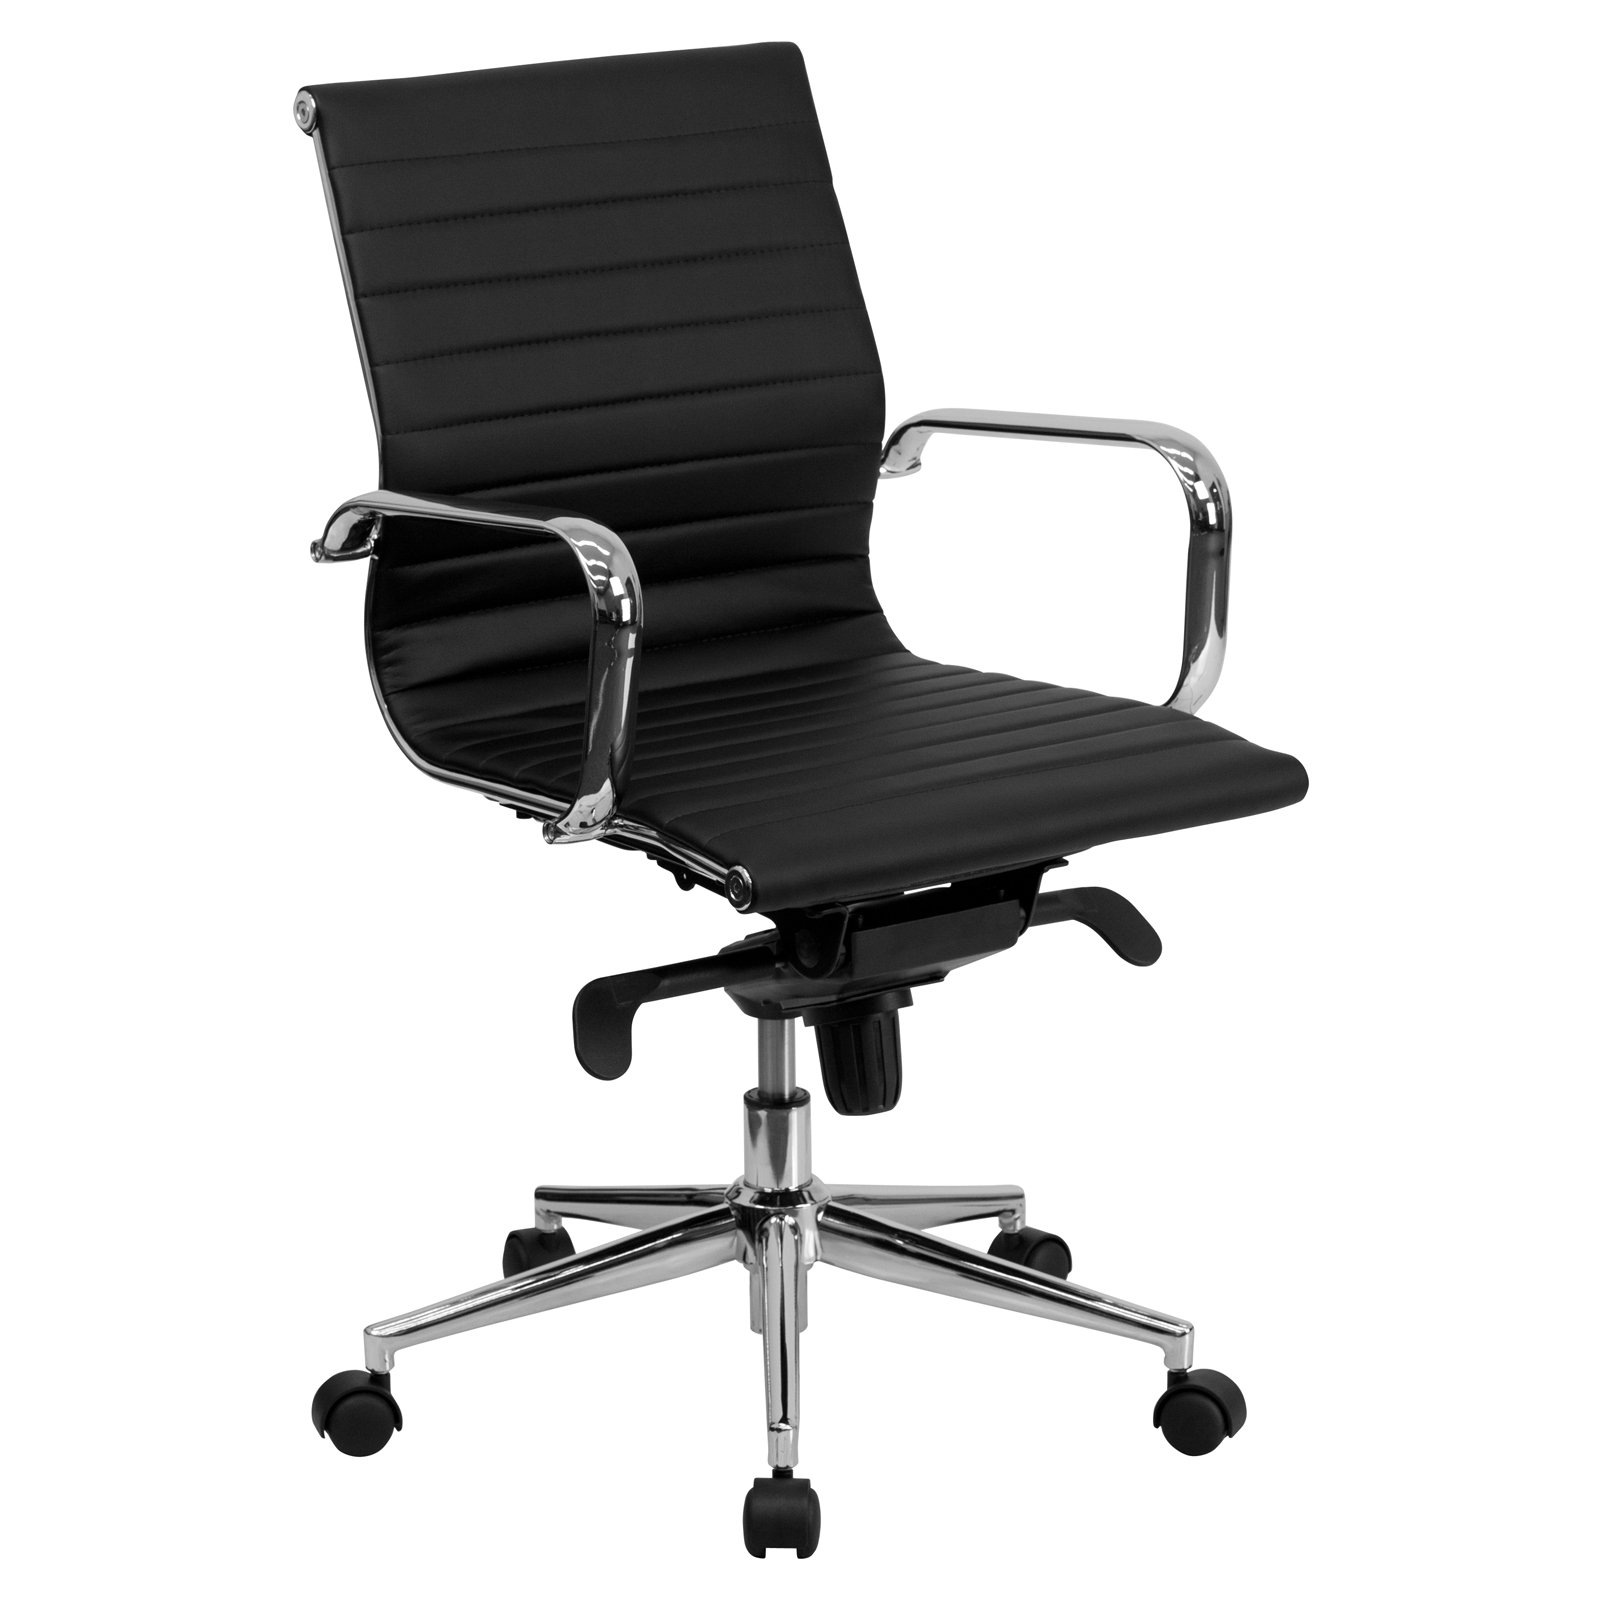 Flash Furniture Mid-Back Ribbed Upholstered Leather Executive Office Chair